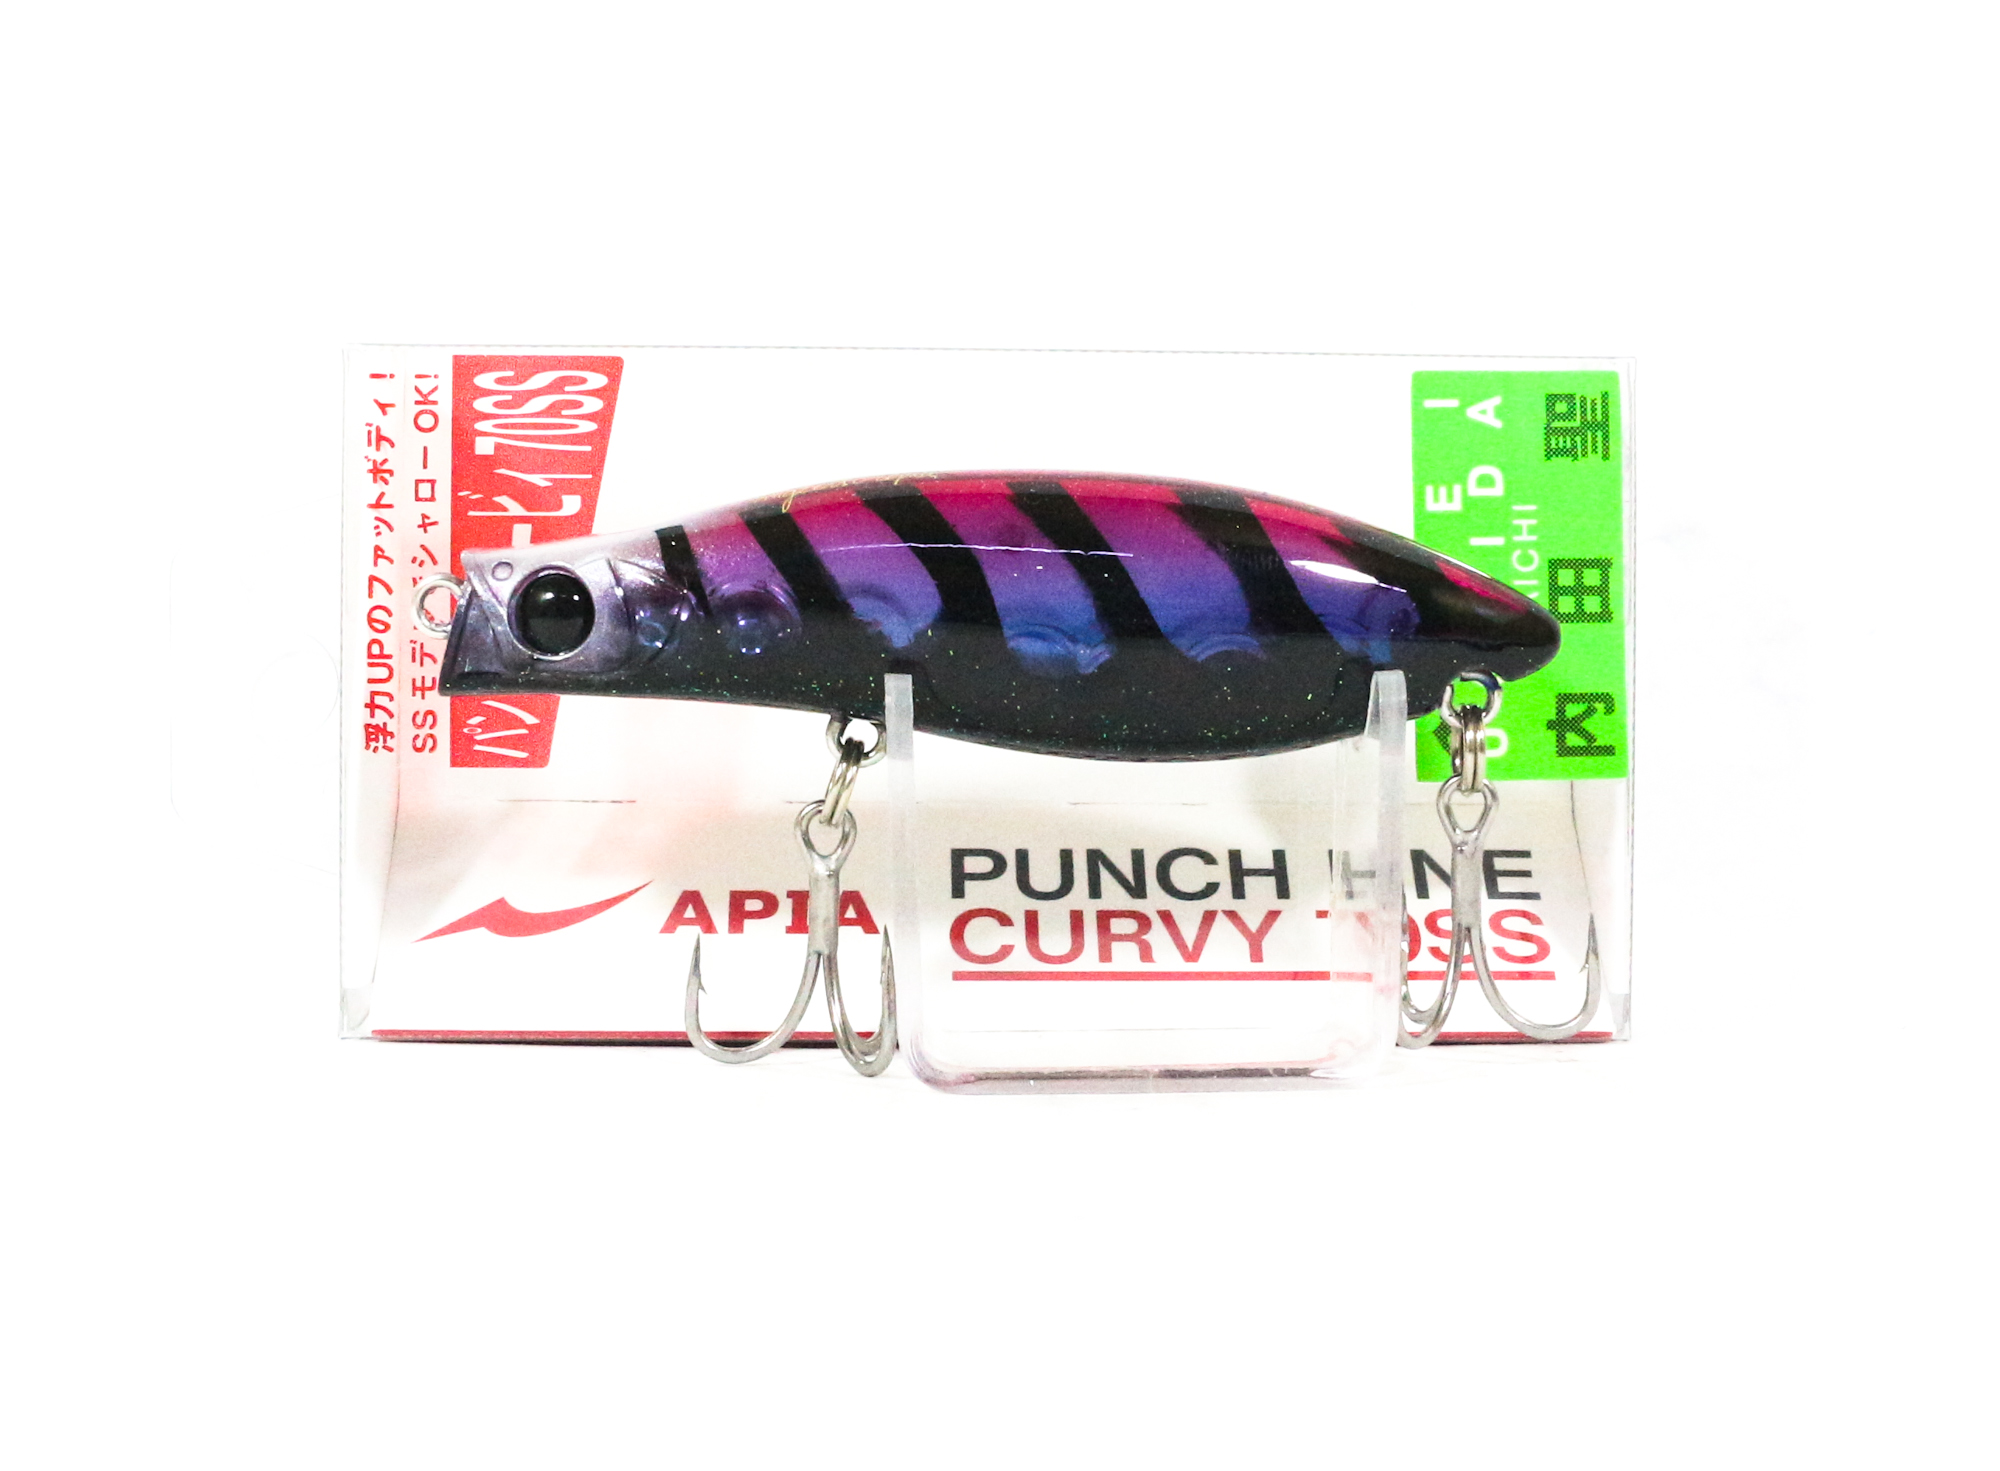 Apia Punch Line Curvy 70SS Pencil Sinking Lure 05 (0047)